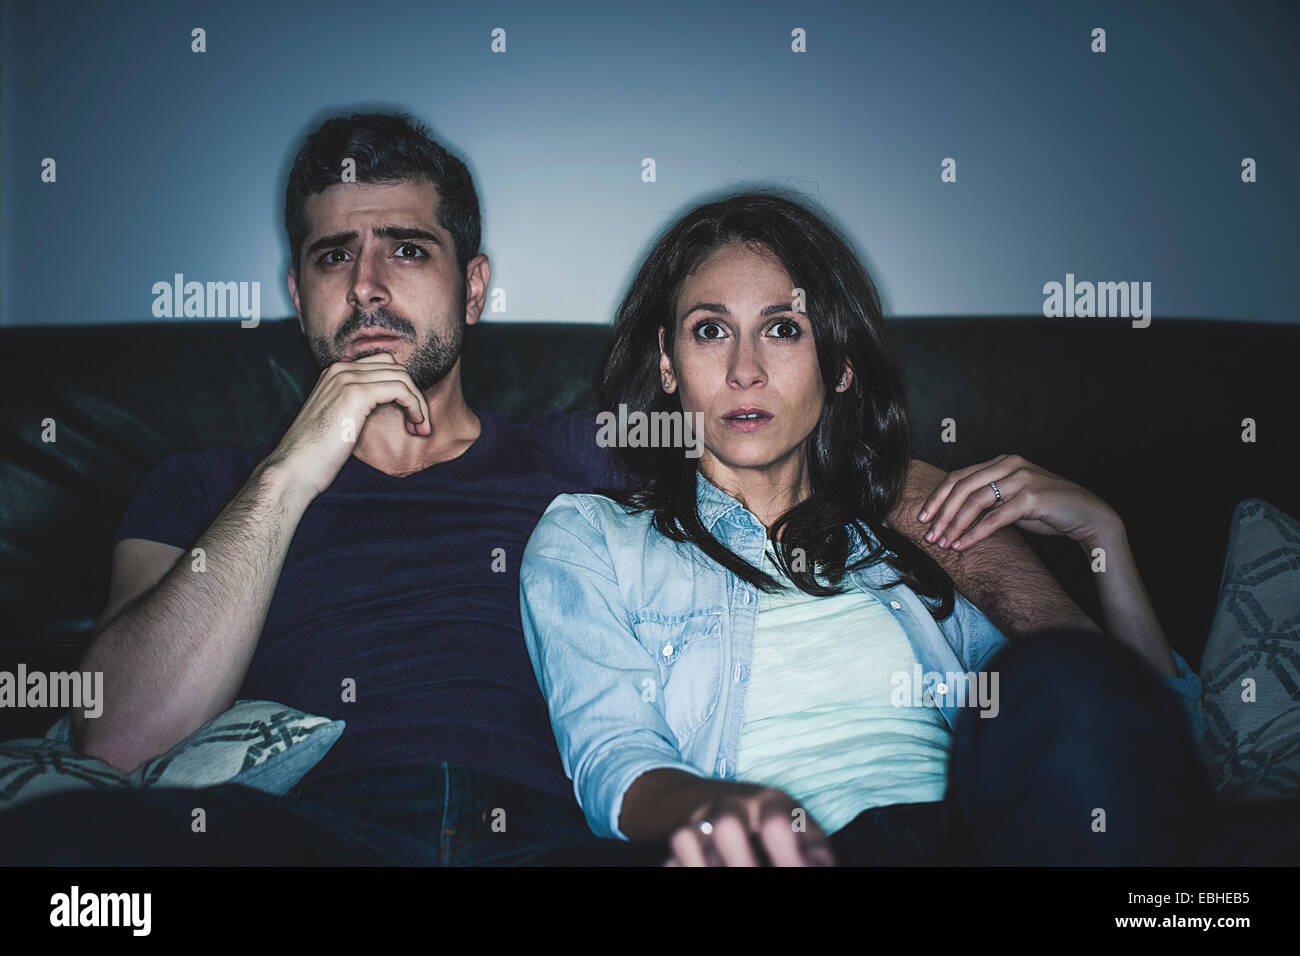 Couple watching thriller on sofa - Stock Image